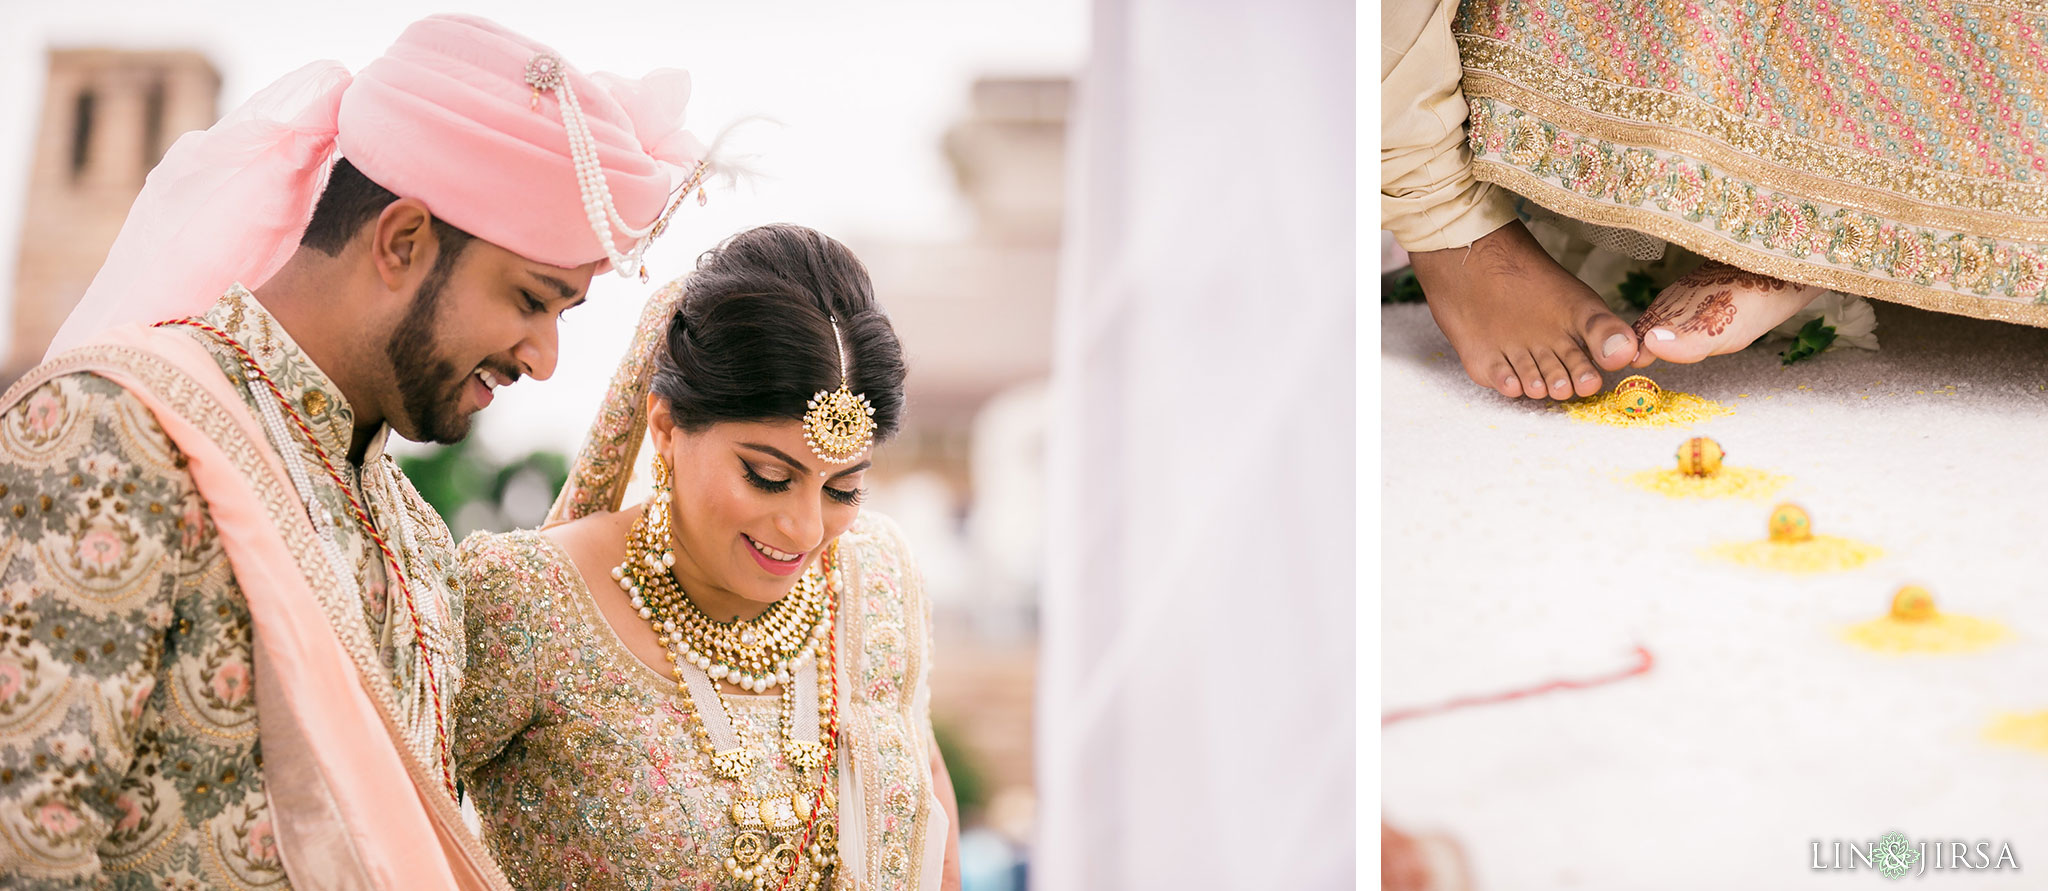 036 montage laguna beach indian wedding ceremony photography